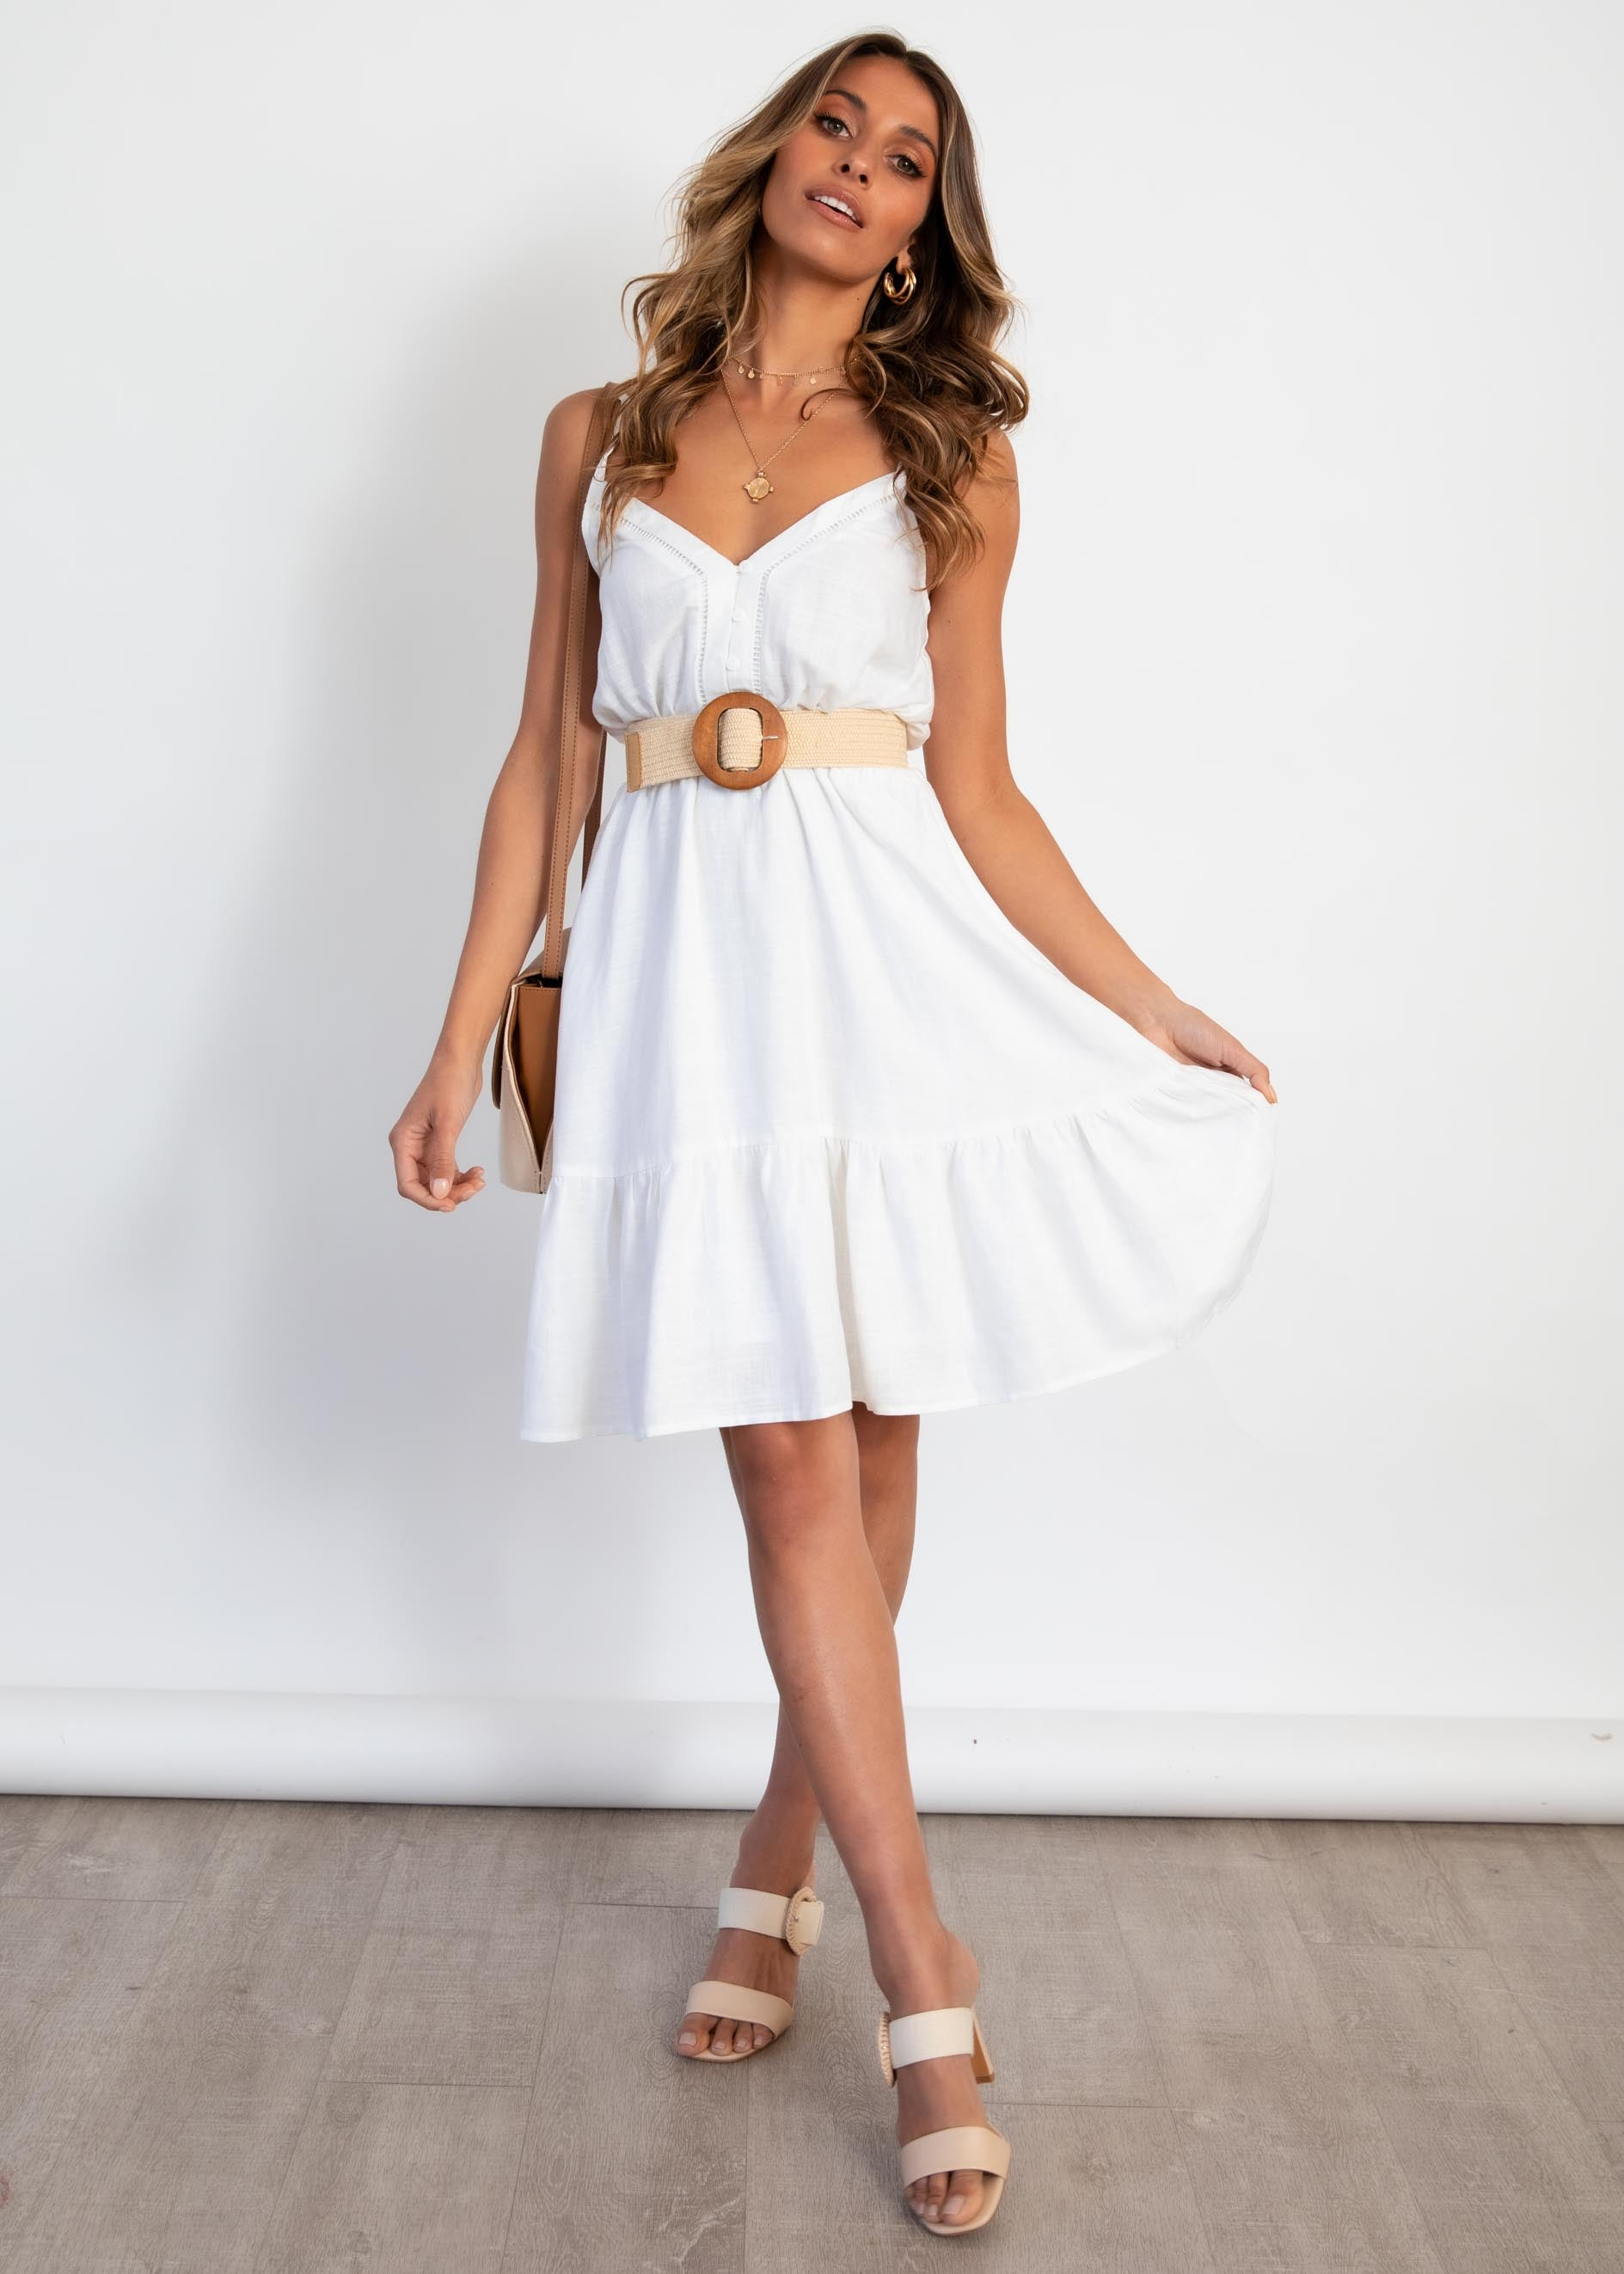 Ziah Mini Dress - Off White